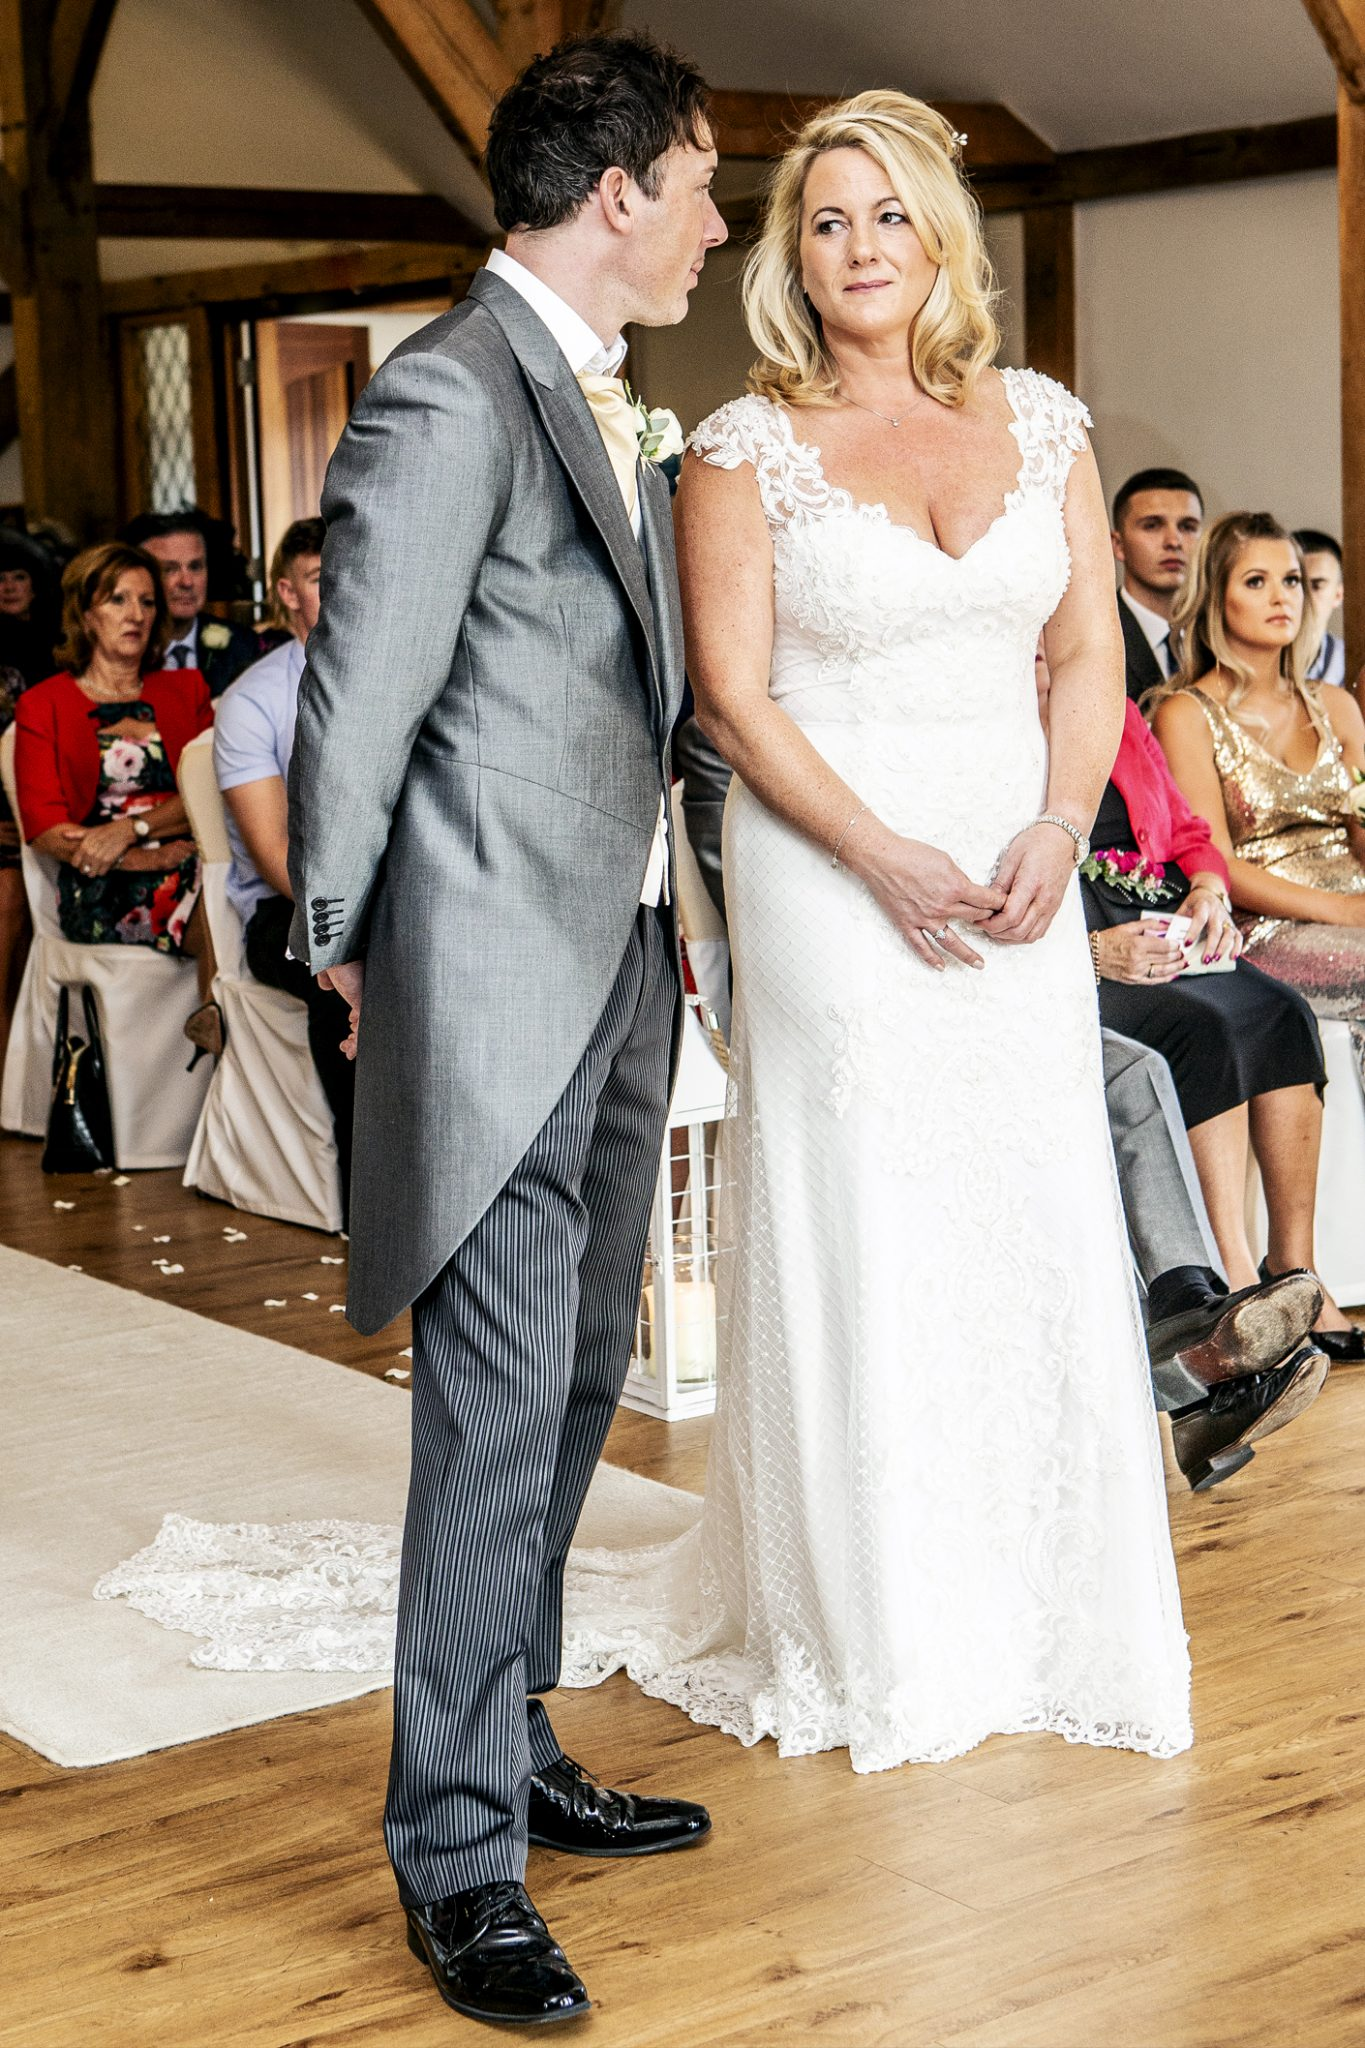 wedding-photography-of-the-bride-and-groom-at-sandhole-oak-barn-in-cheshire